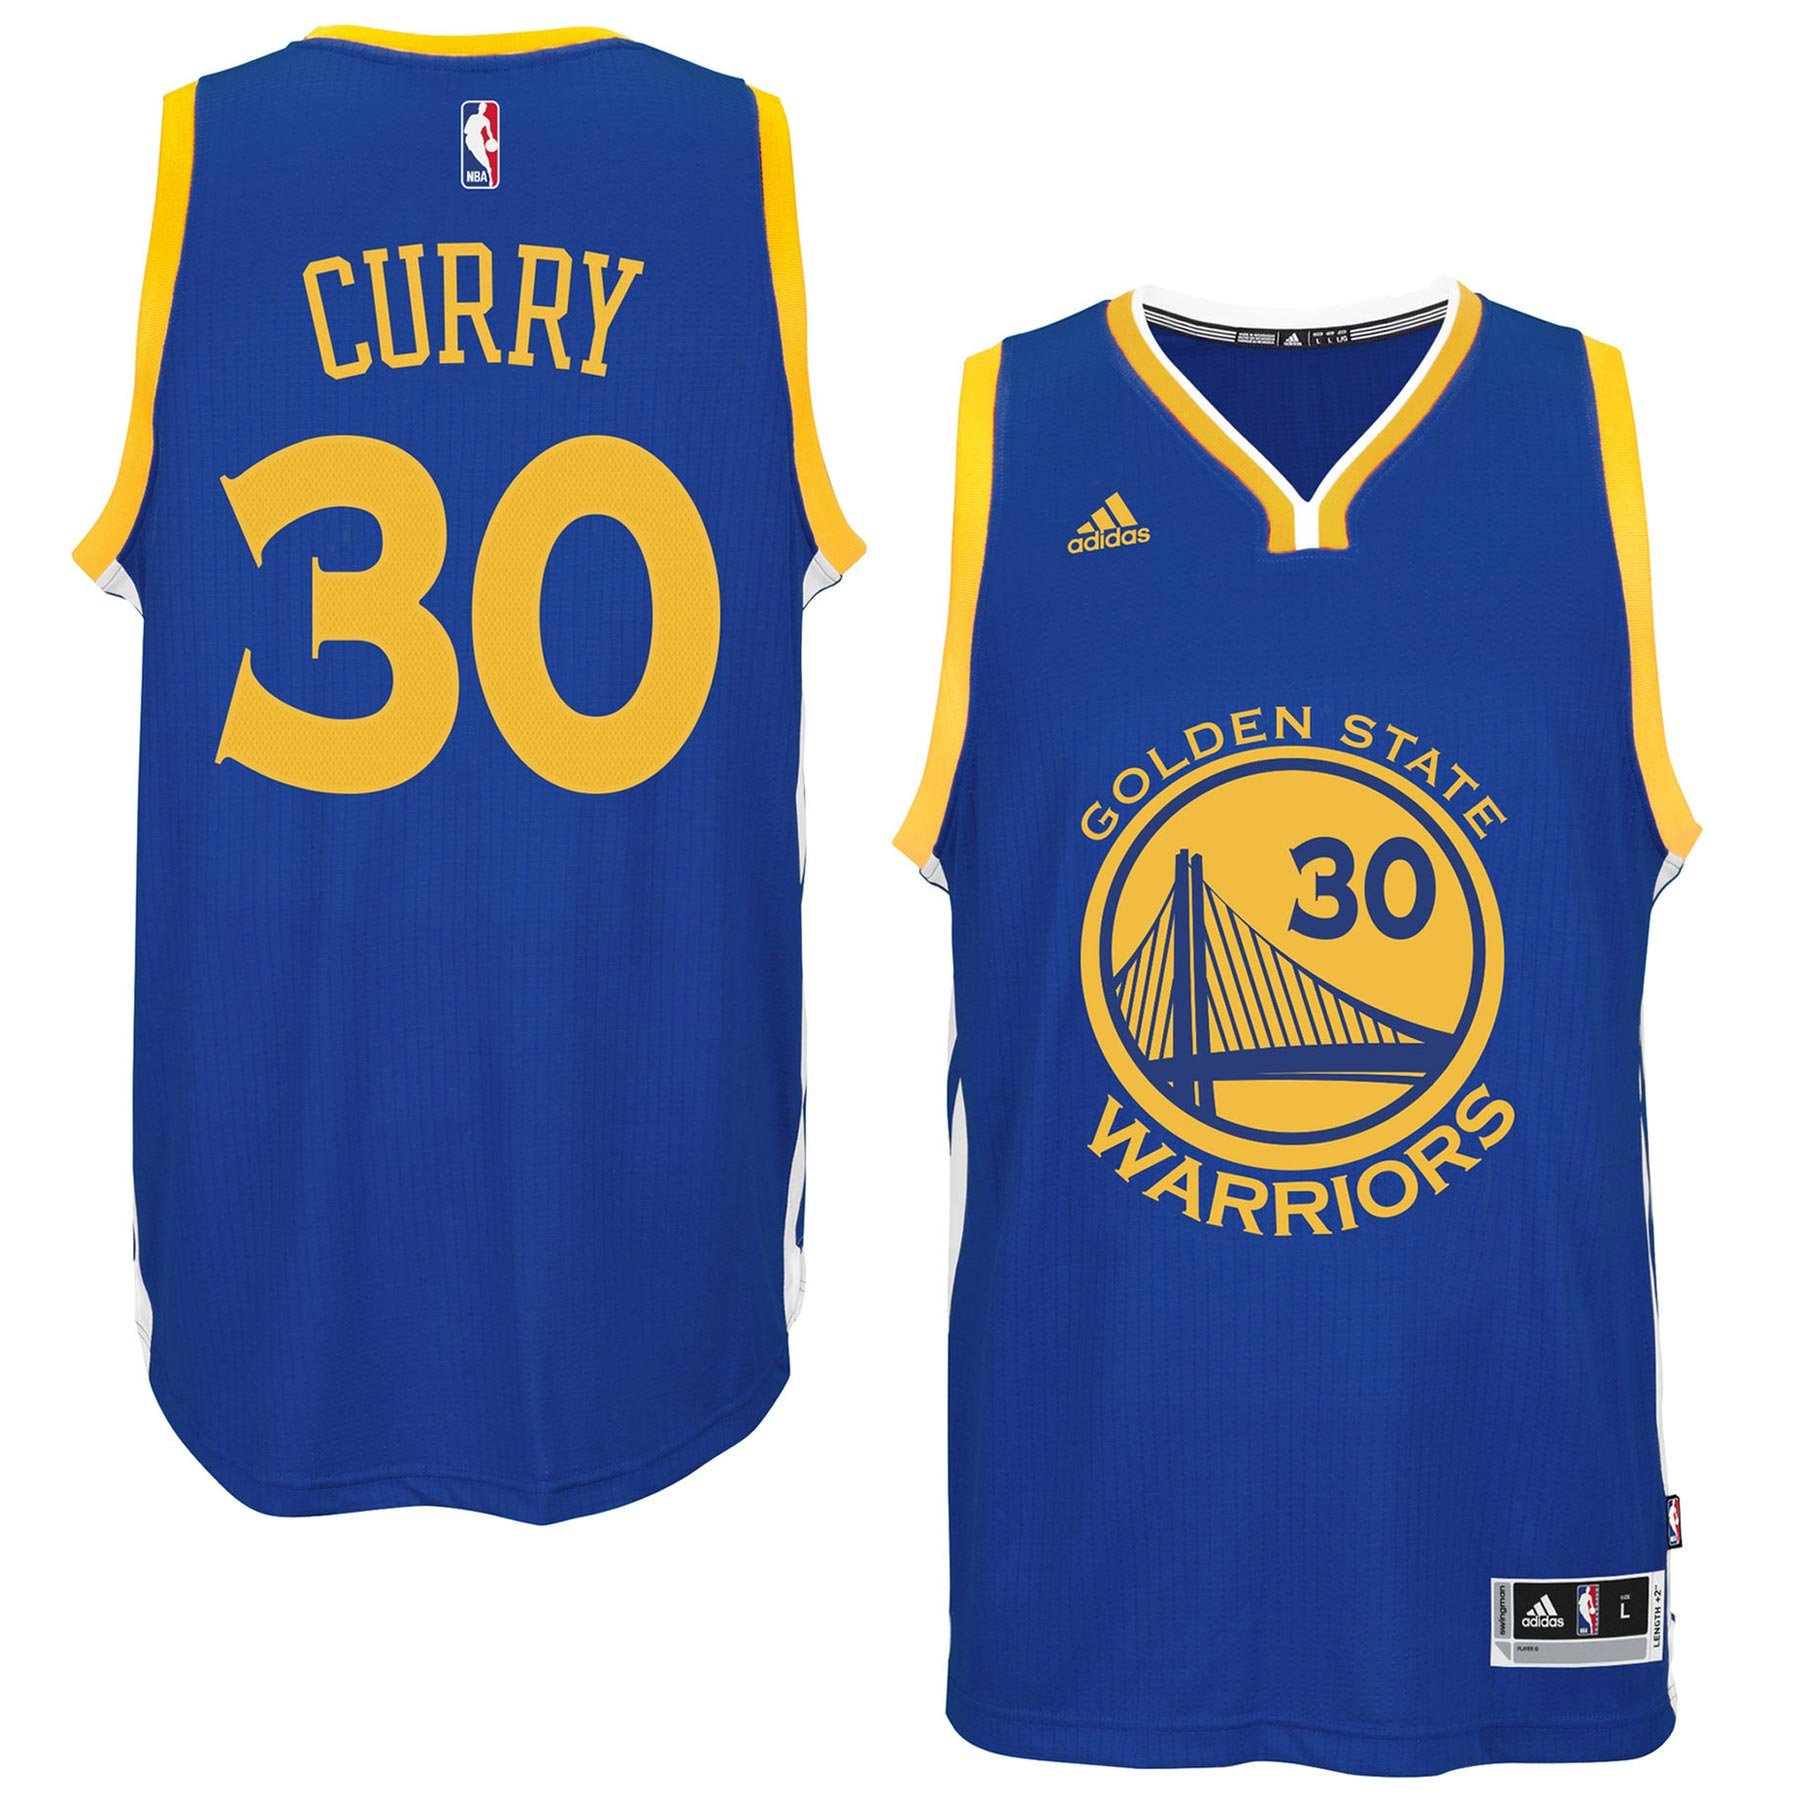 reputable site f7e66 757d1 Stephen Curry Golden State Warriors NBA Swingman Road ...